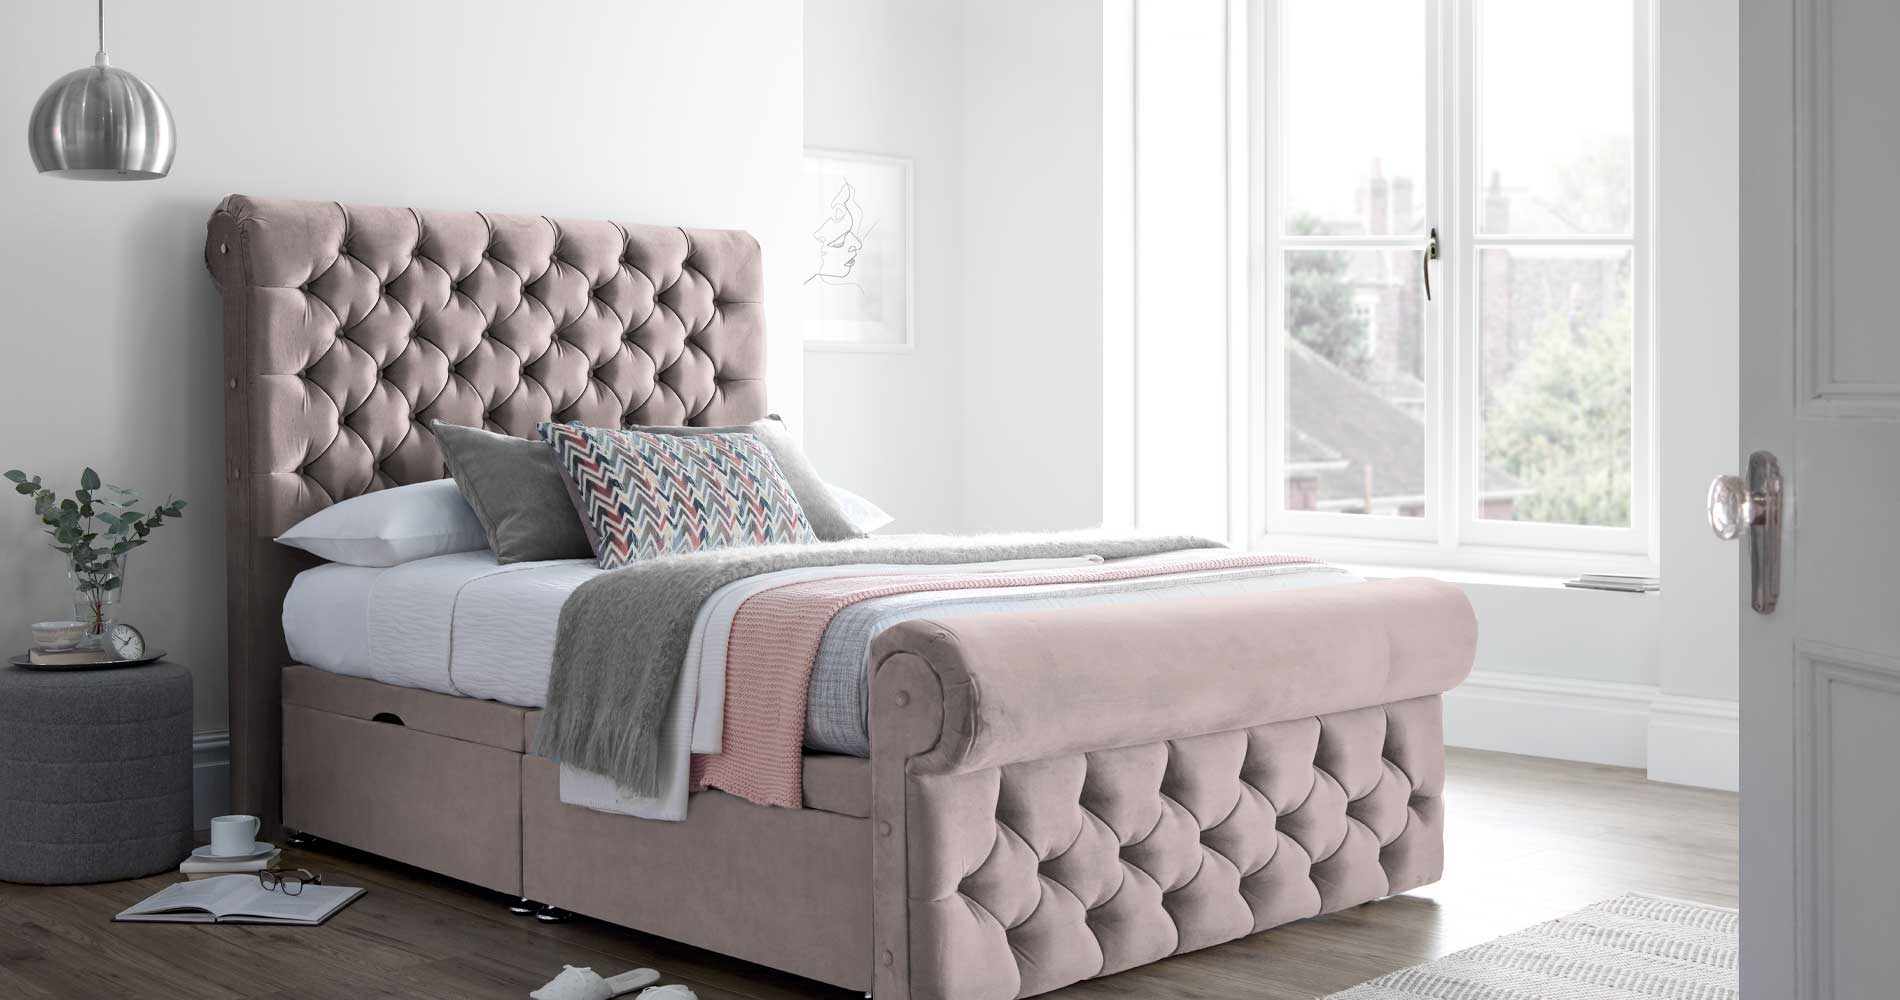 Beds | Ottoman Beds | Fabric Beds | Divan Beds | Guest Beds | Double & King Size Beds